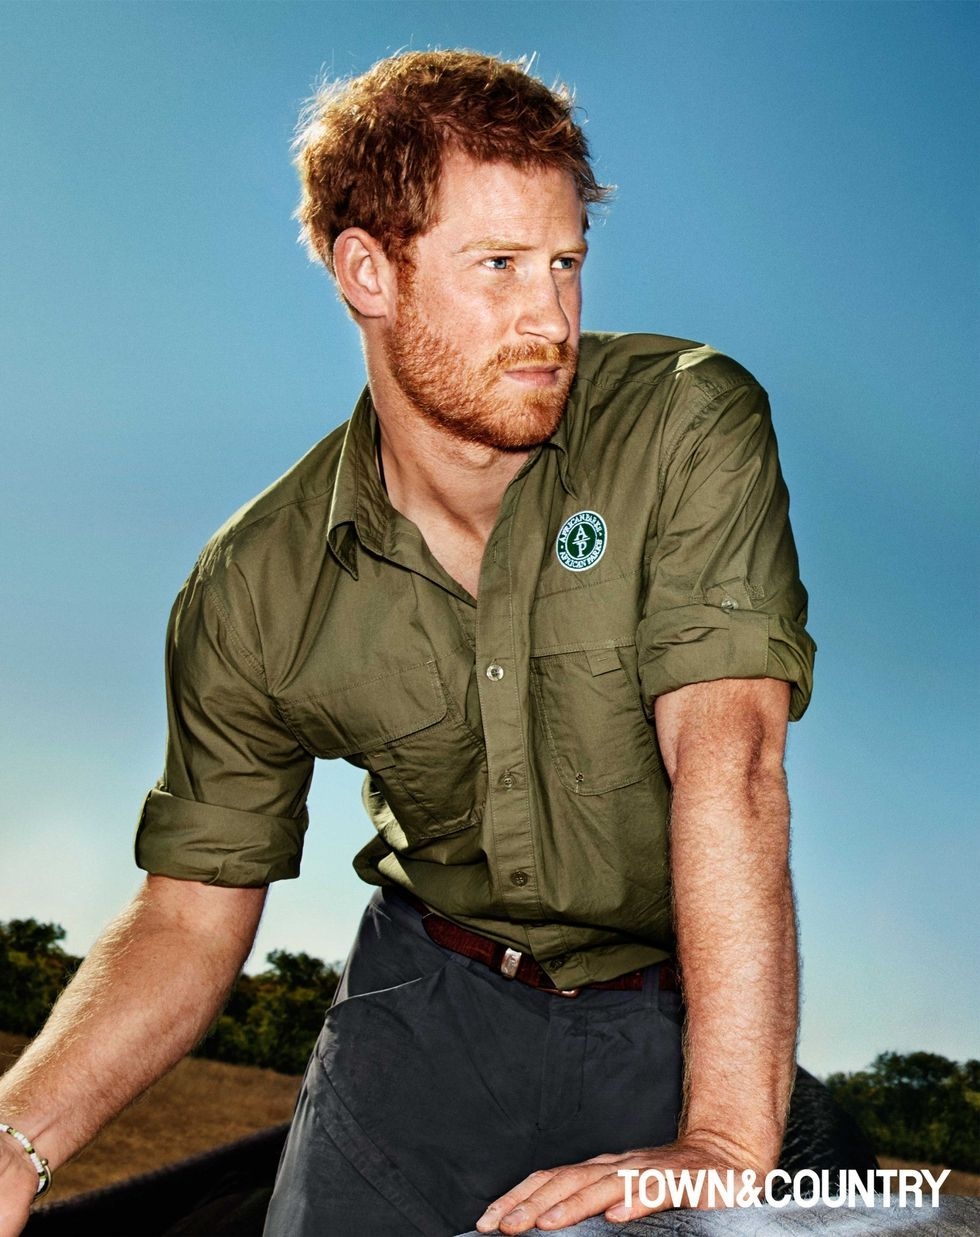 PRINCE HARRY, PHOTOGRAPHED FOR TOWN & COUNTRY by ALEXEI HAY